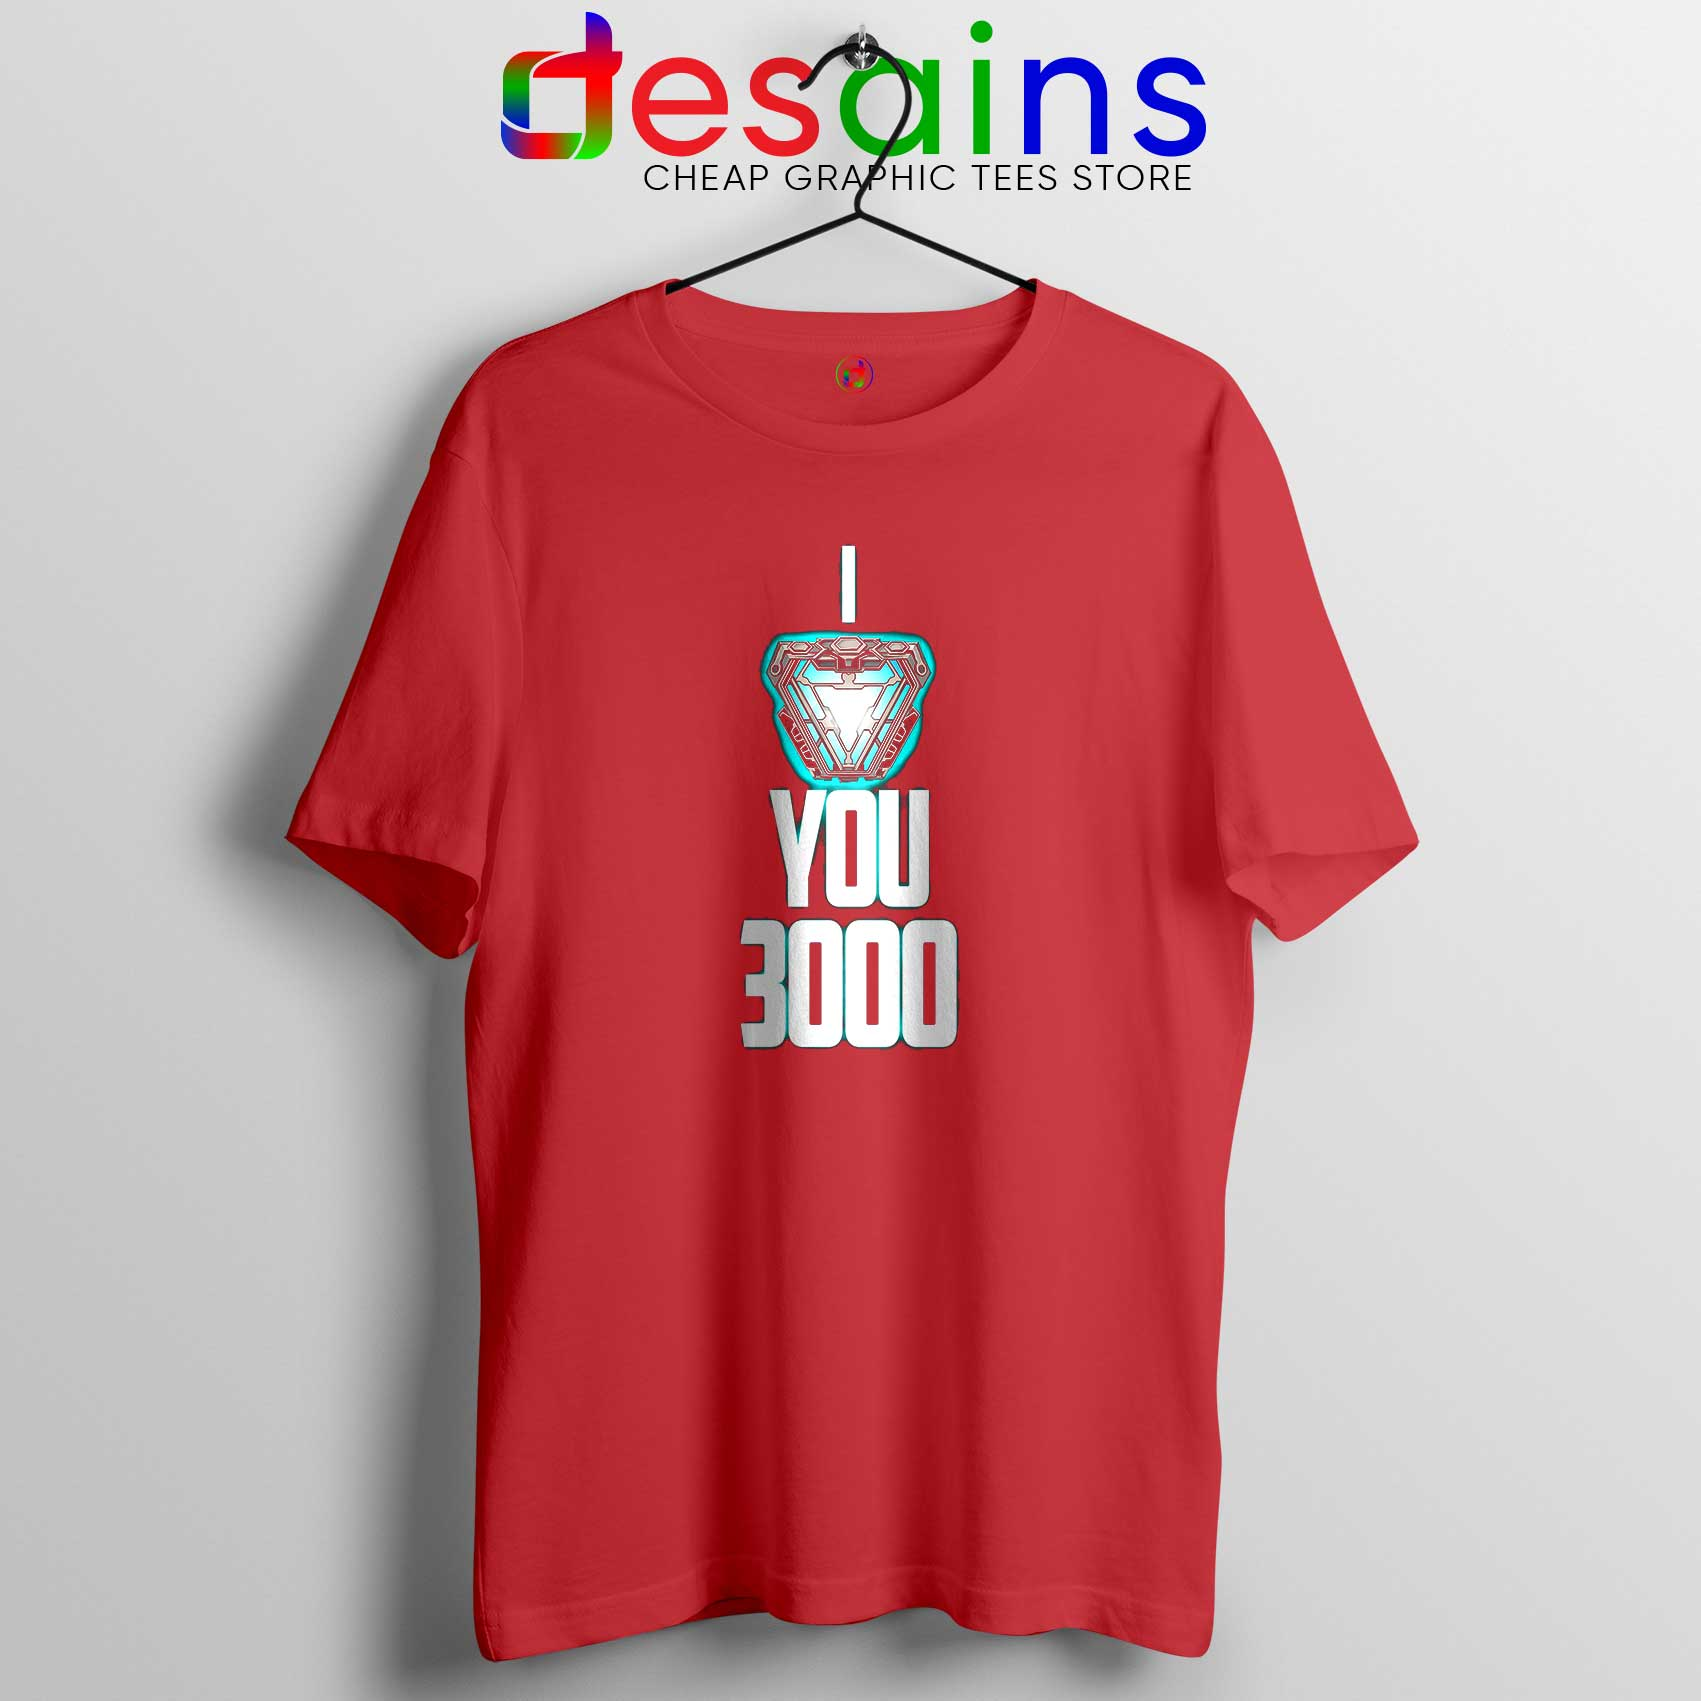 0a934a2d Buy Tee Shirt I Love You 3000 Iron Man Red Marvel Clothing